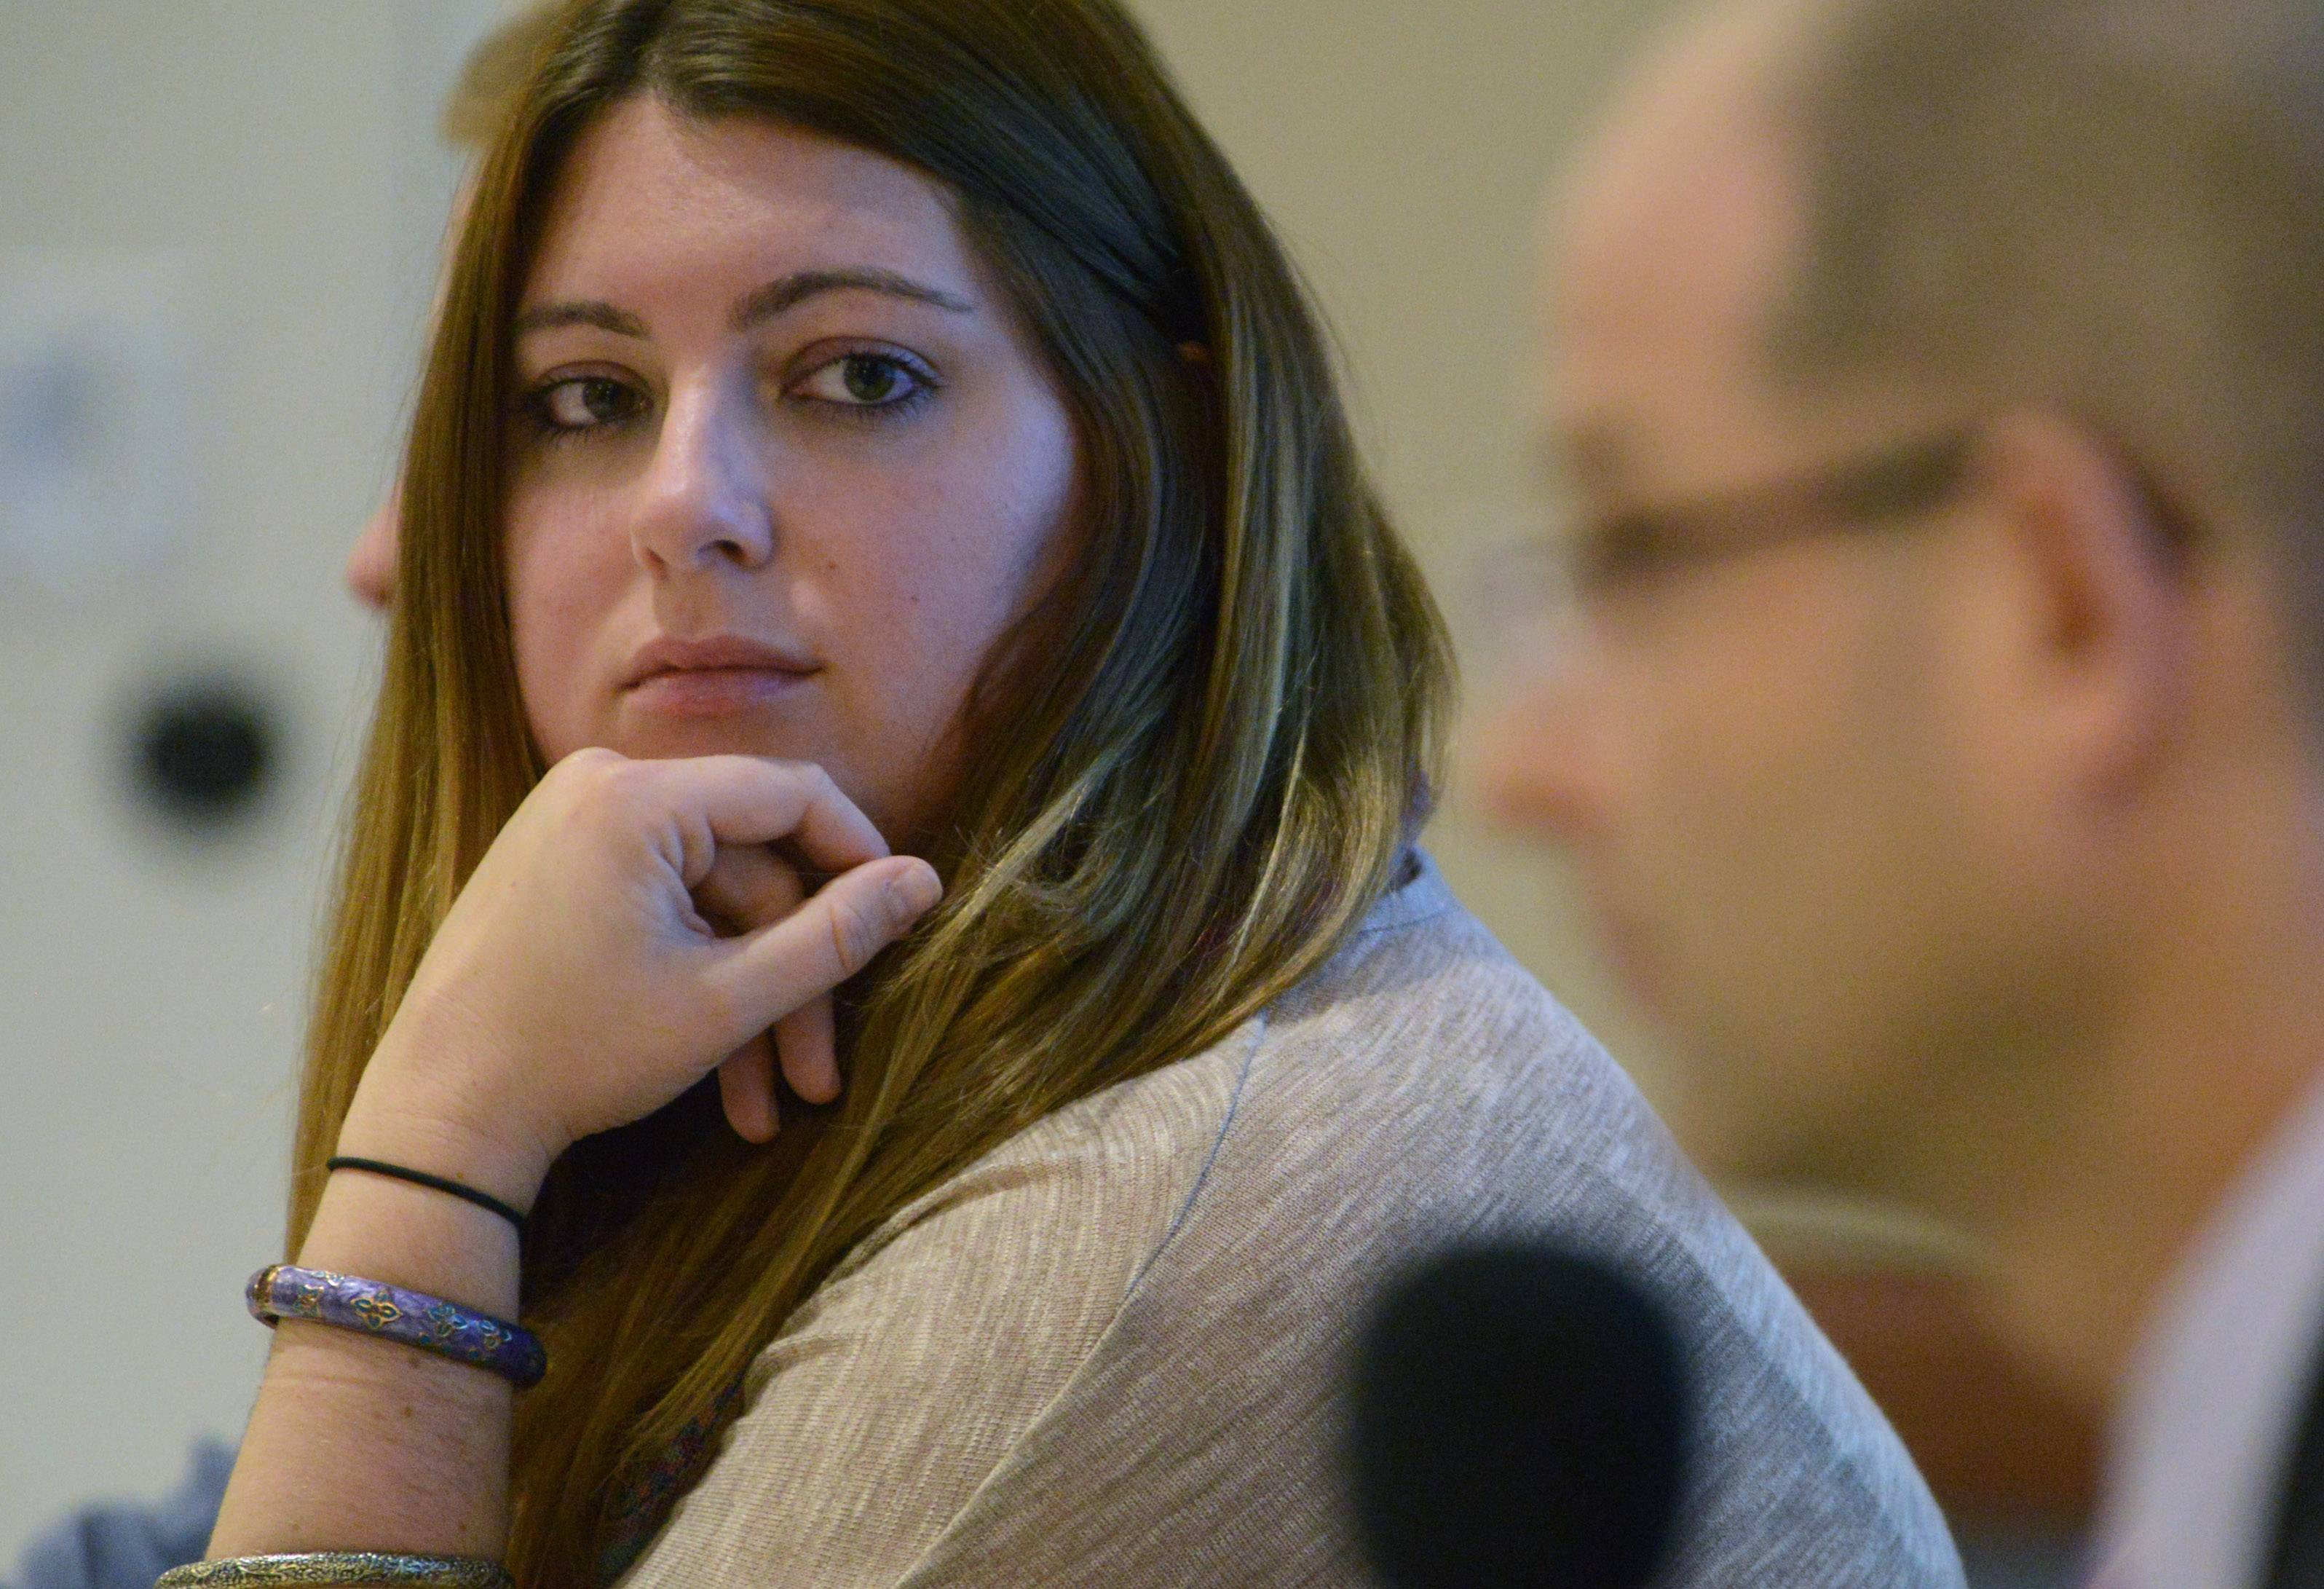 Chelsea Laliberte, founder of the anti-heroin nonprofit Live4Lali in Arlington Heights, says it's important to recognize abstinence isn't the only route to opioid addiction recovery.